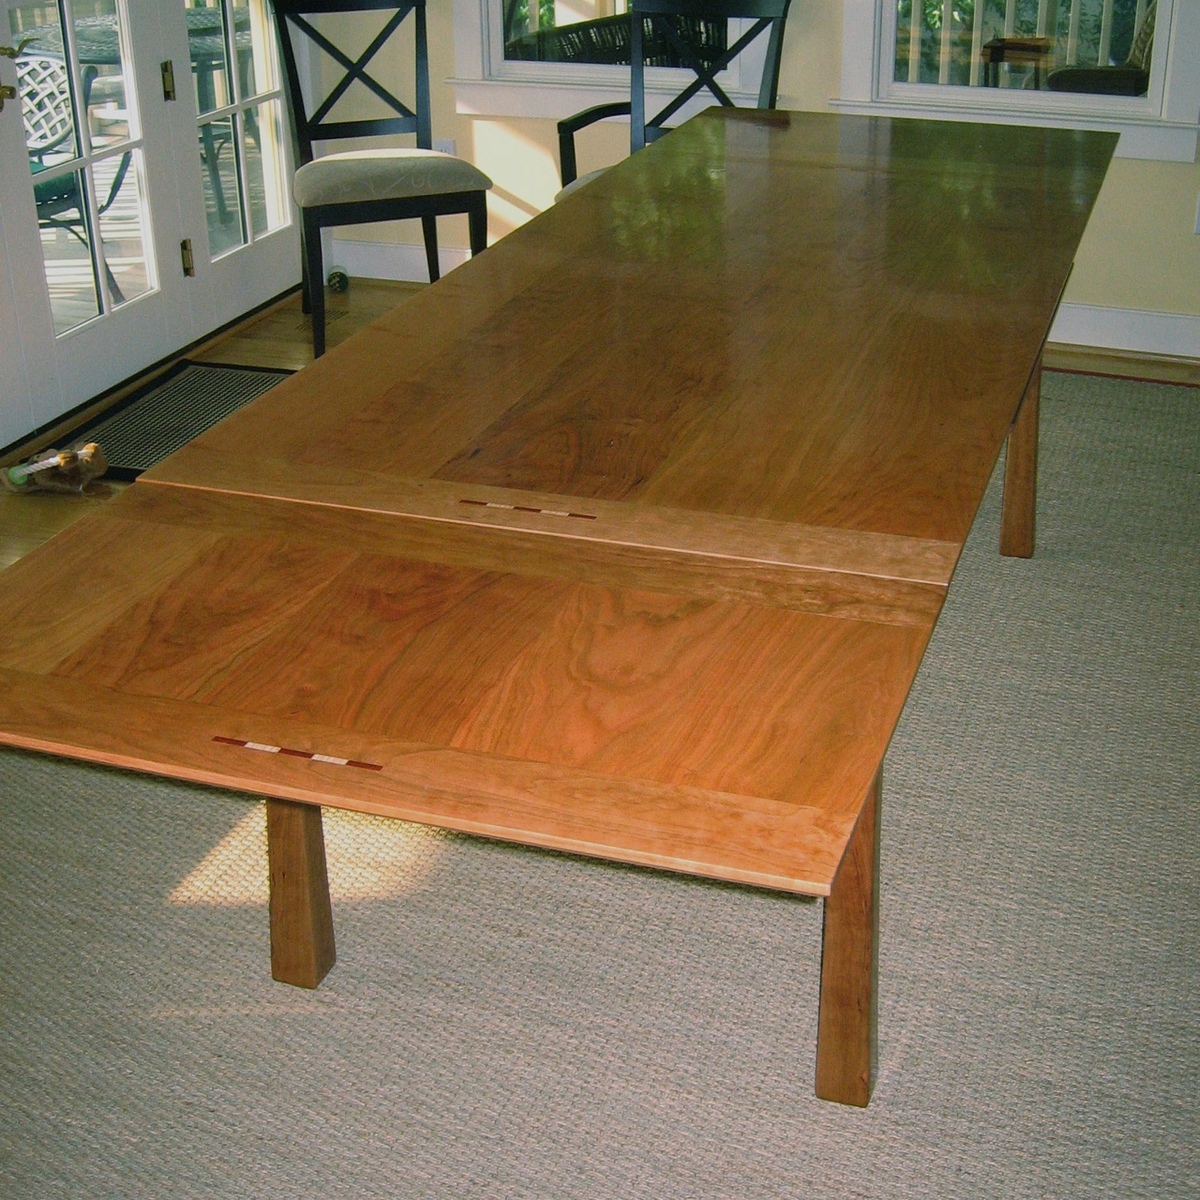 jx1k9eOGSTWDCkB8NtSI_Dutch-Pull-Out-Dining-Table-extended.-Joseph-Murphy-Furniture-Maker-at-CustomMade.com_.jpg